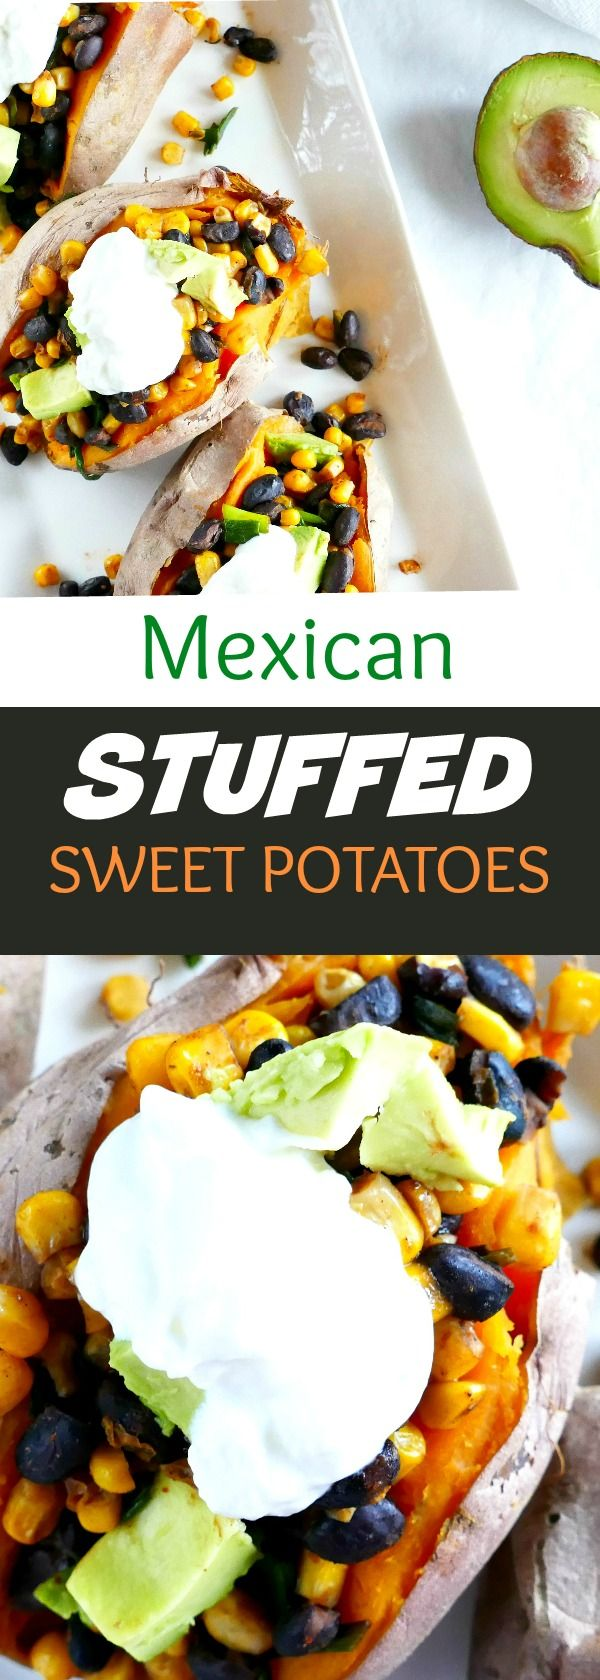 These vegetarian stuffed sweet potatoes are a perfect easy meal! Featuring black beans, corn, scallions, and avocado. | itsavegworldafterall.com